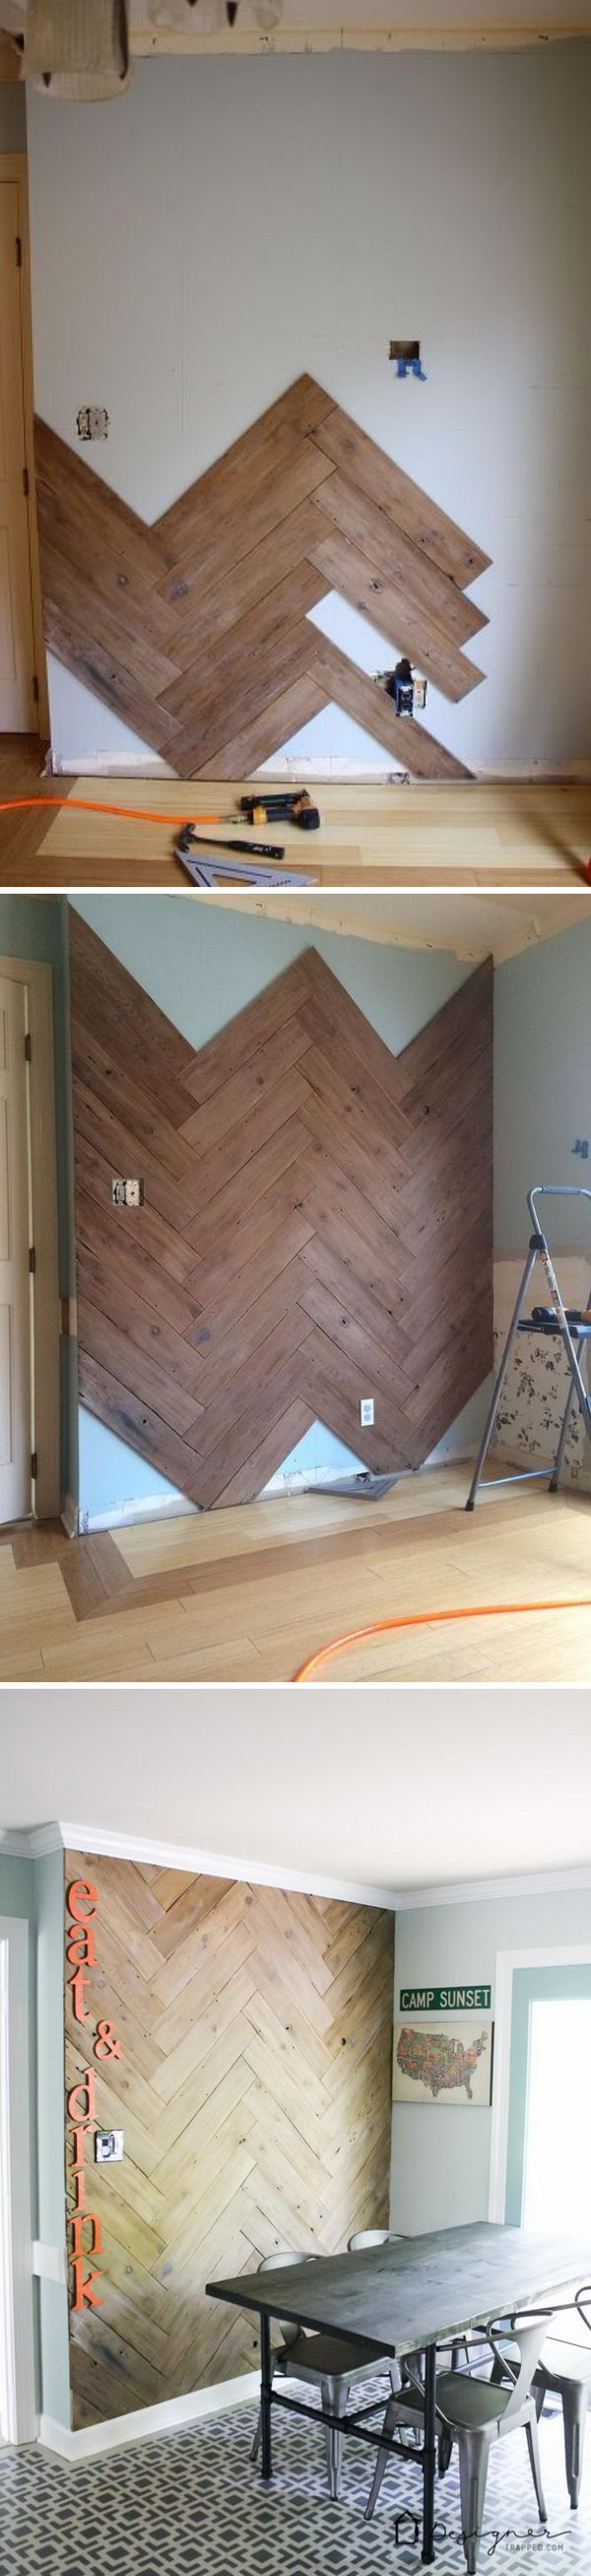 DIY Herringbone Plank Wall Upcyled from an Ugly, Old Fence.